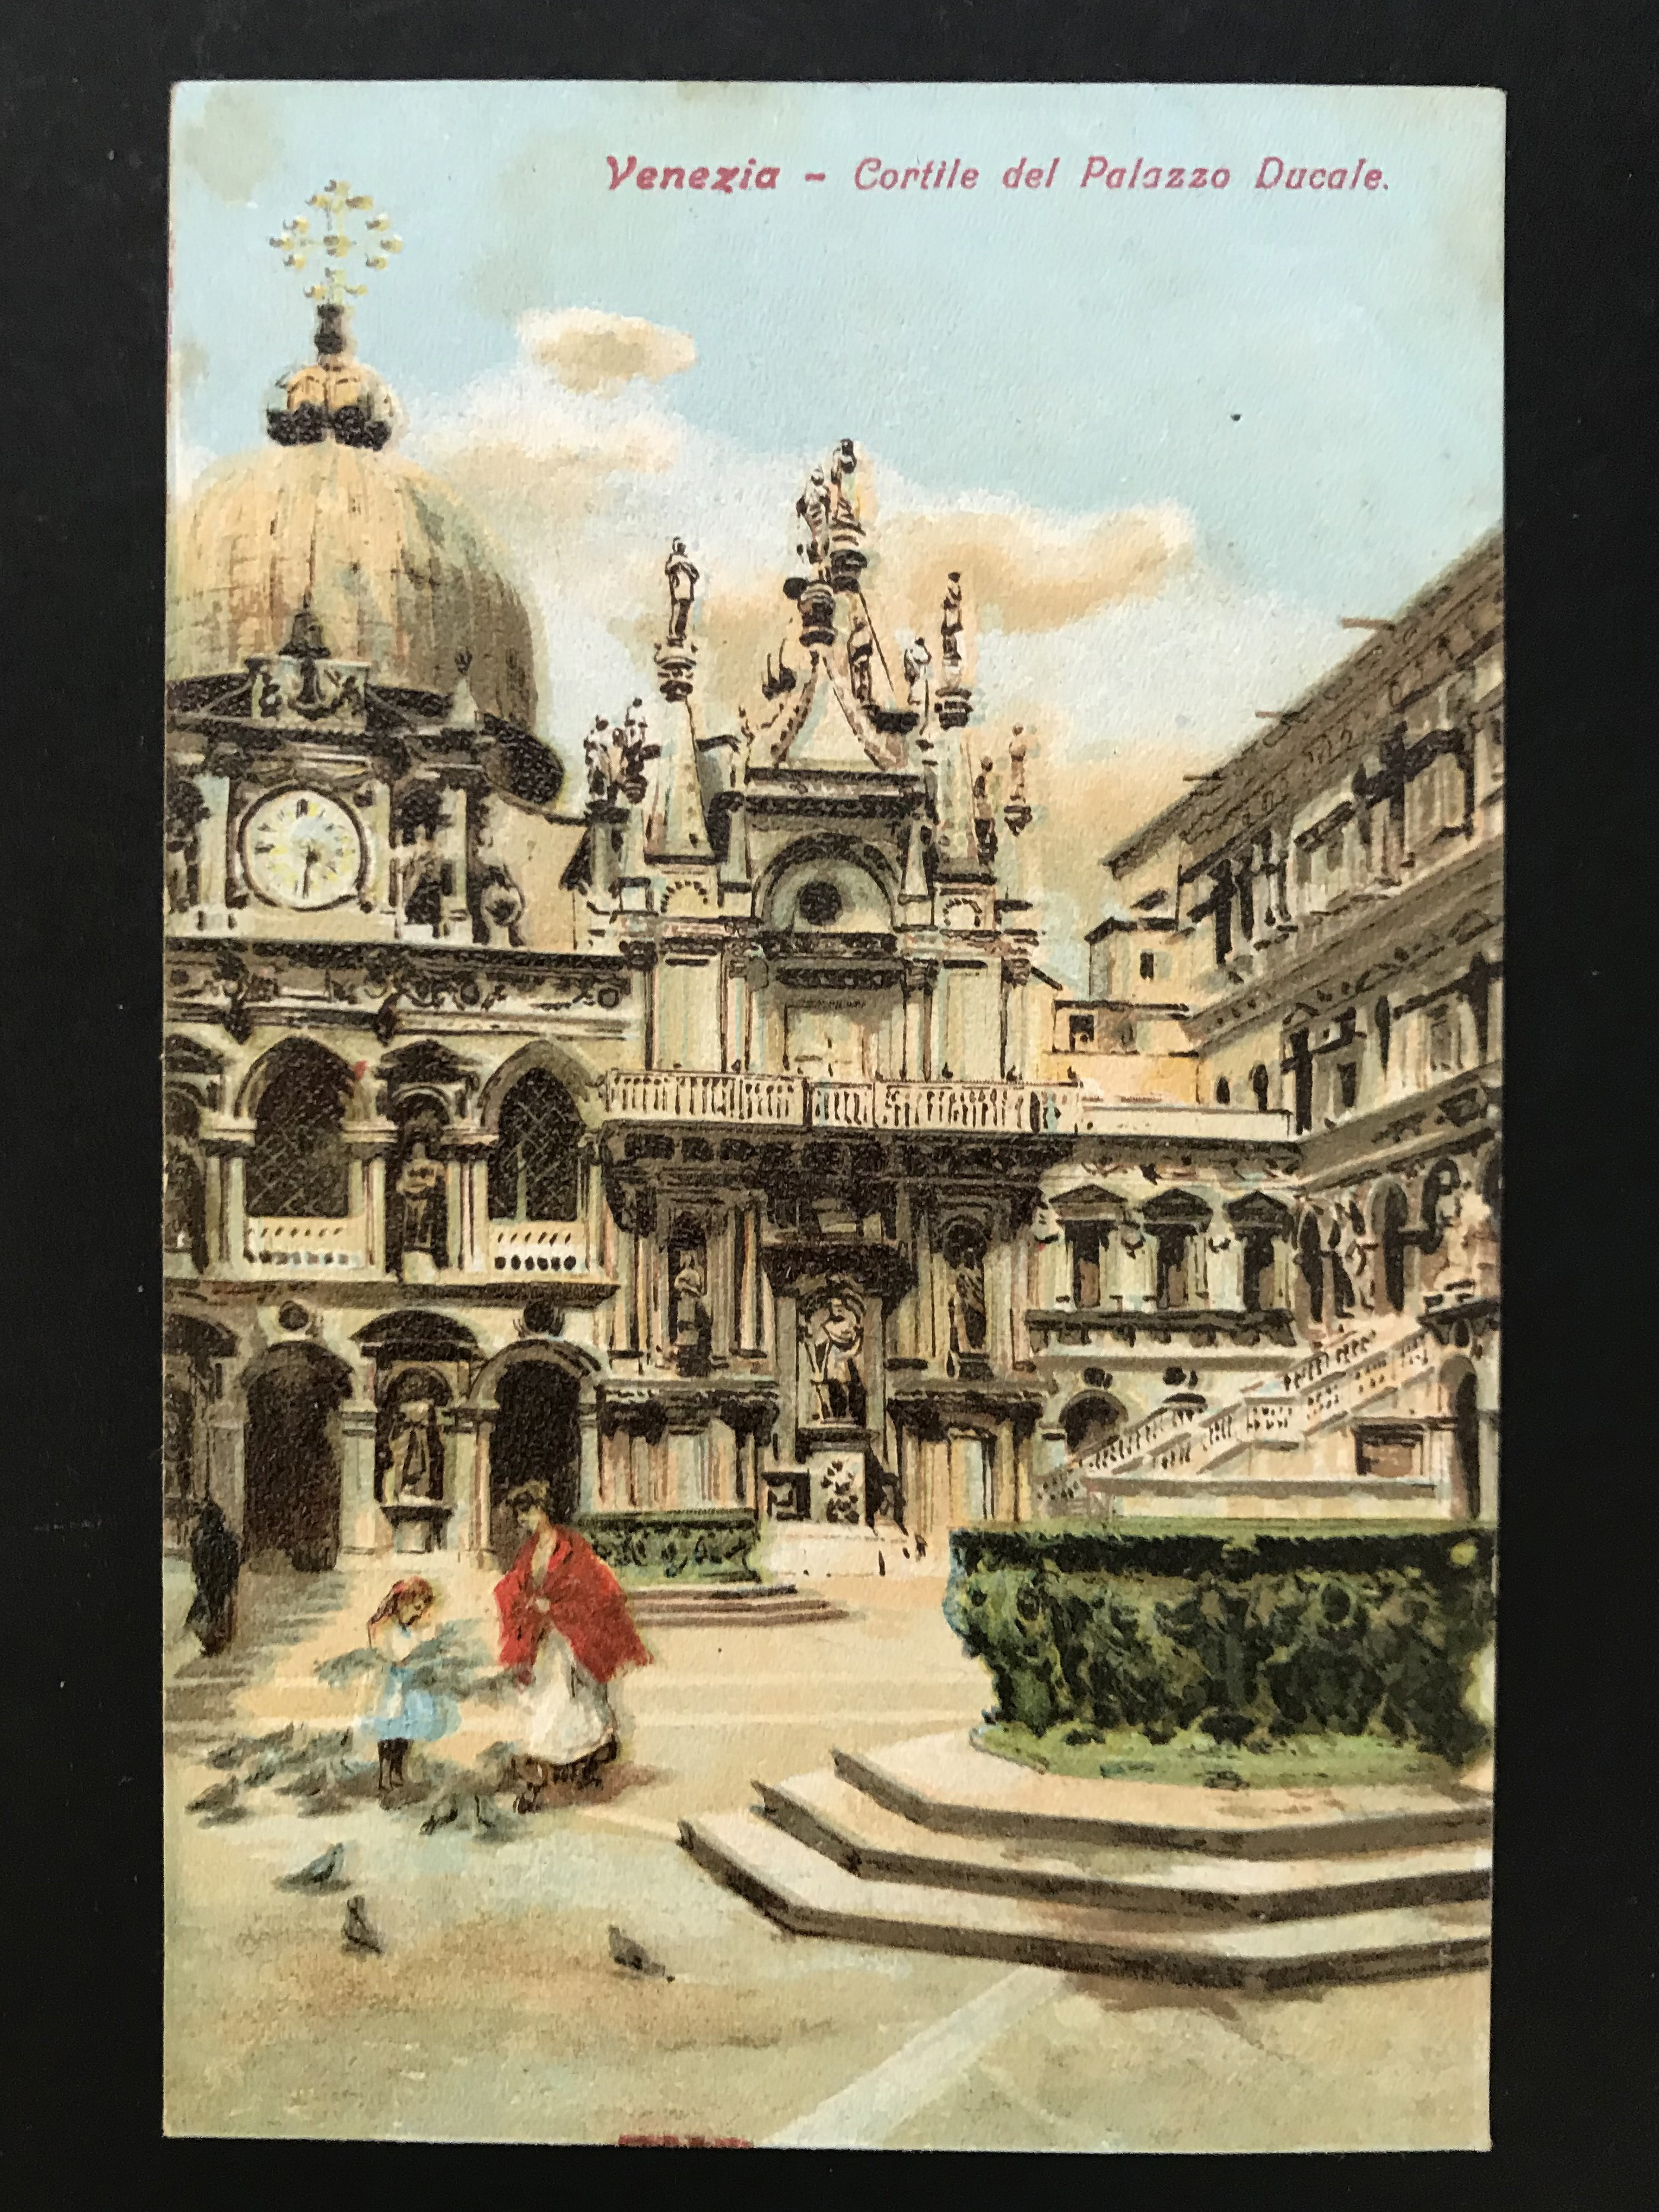 SELECTION OF VENICE RELATED POSTCARDS - Image 13 of 53